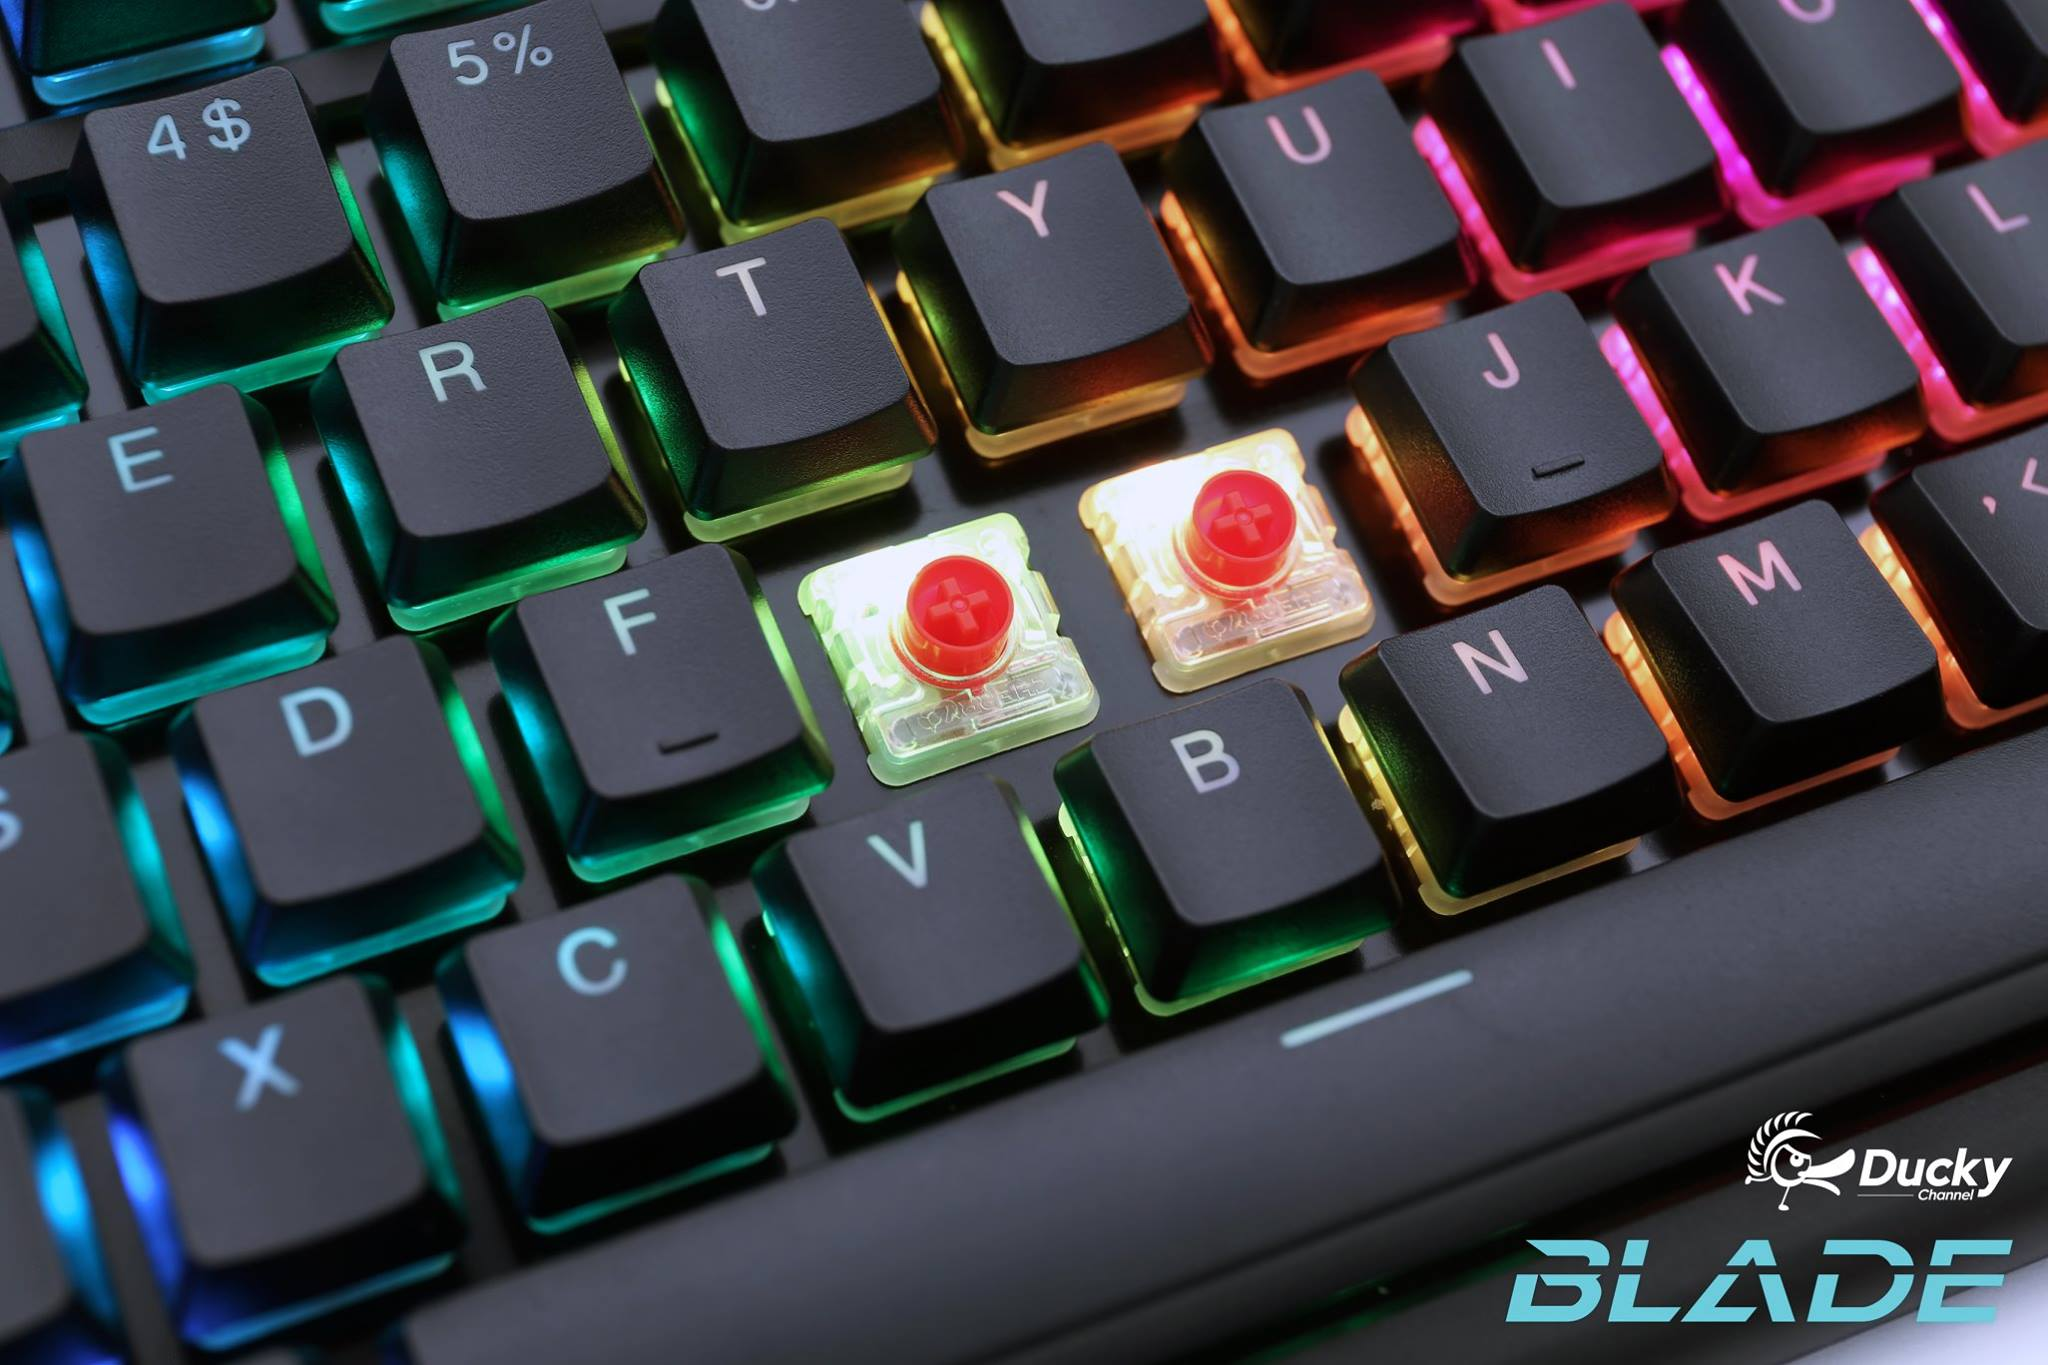 d278e047715 Ducky Blade Air Teased Featuring CHERRY MX Low Profile RGB Switches